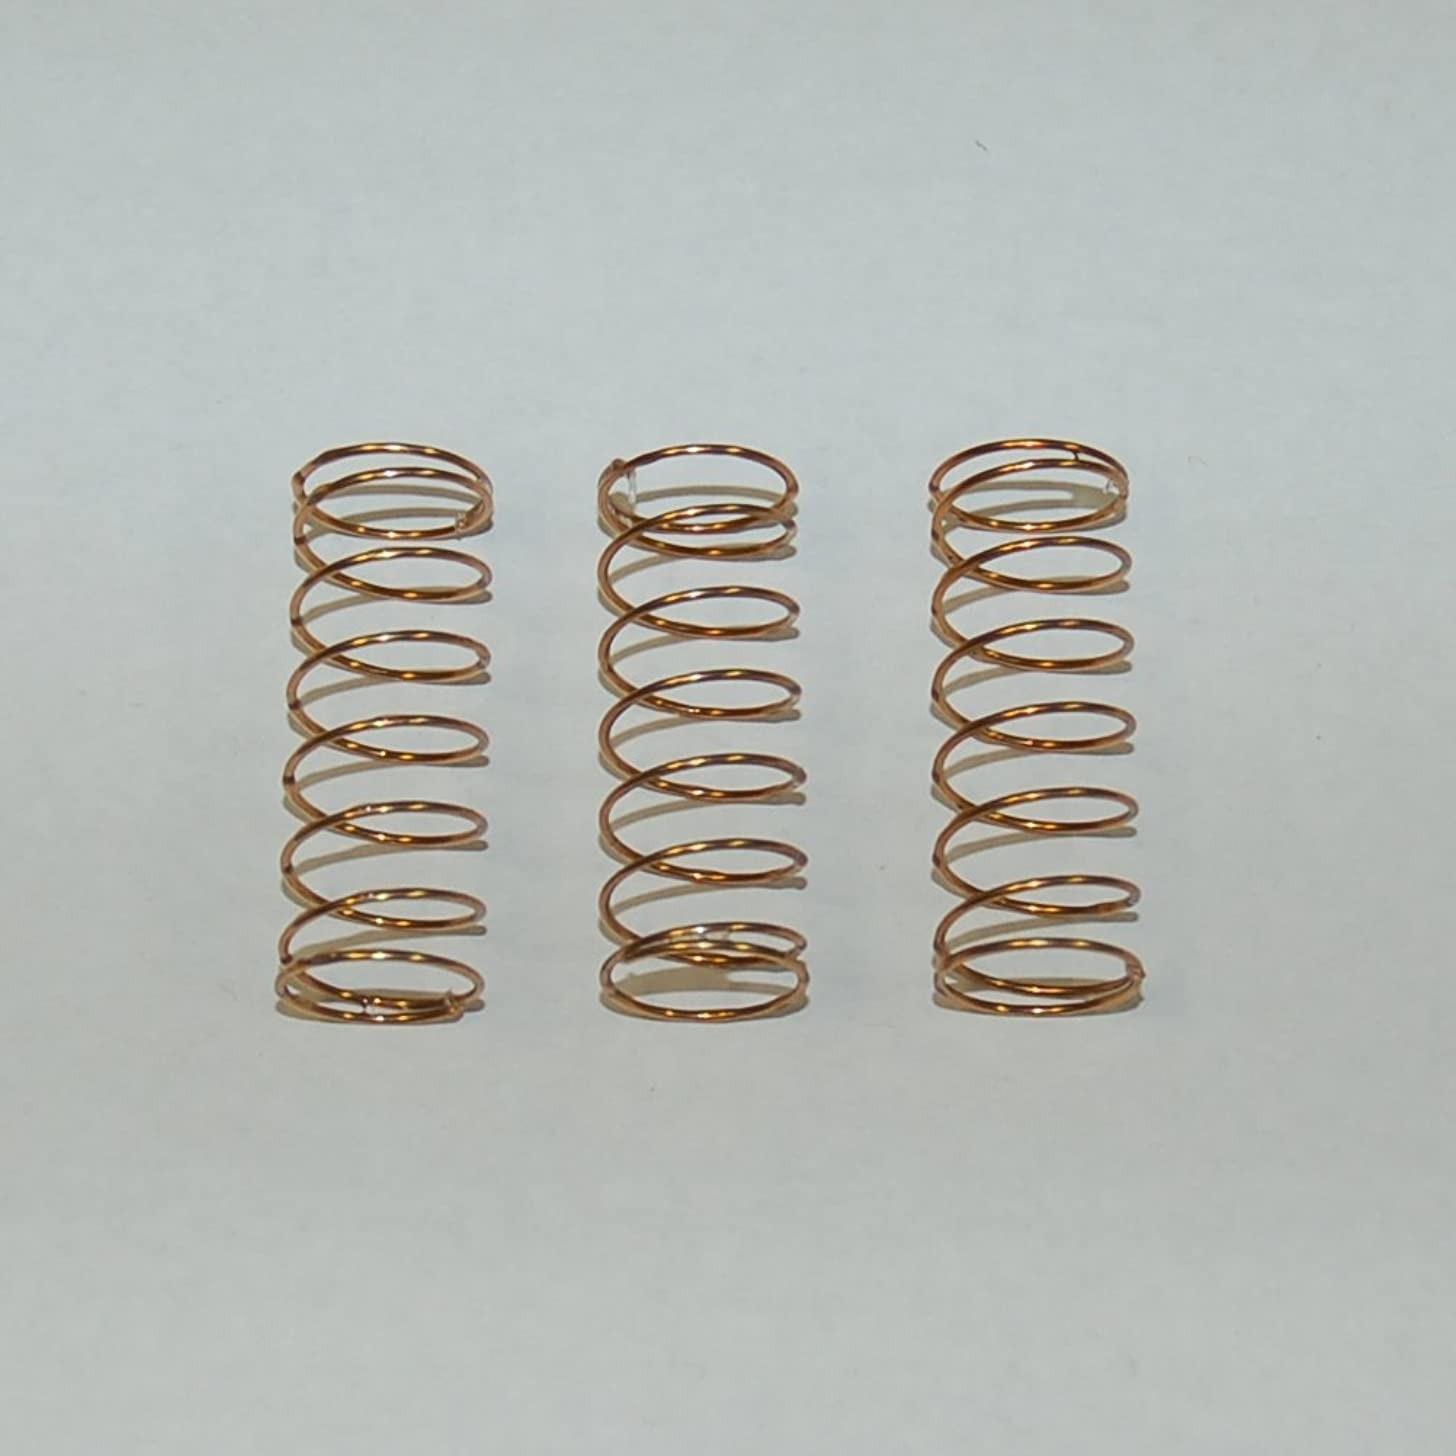 Yamaha Genuine Valve Piston Spring Baritone Euphonium Tuba - Set of 3 Springs